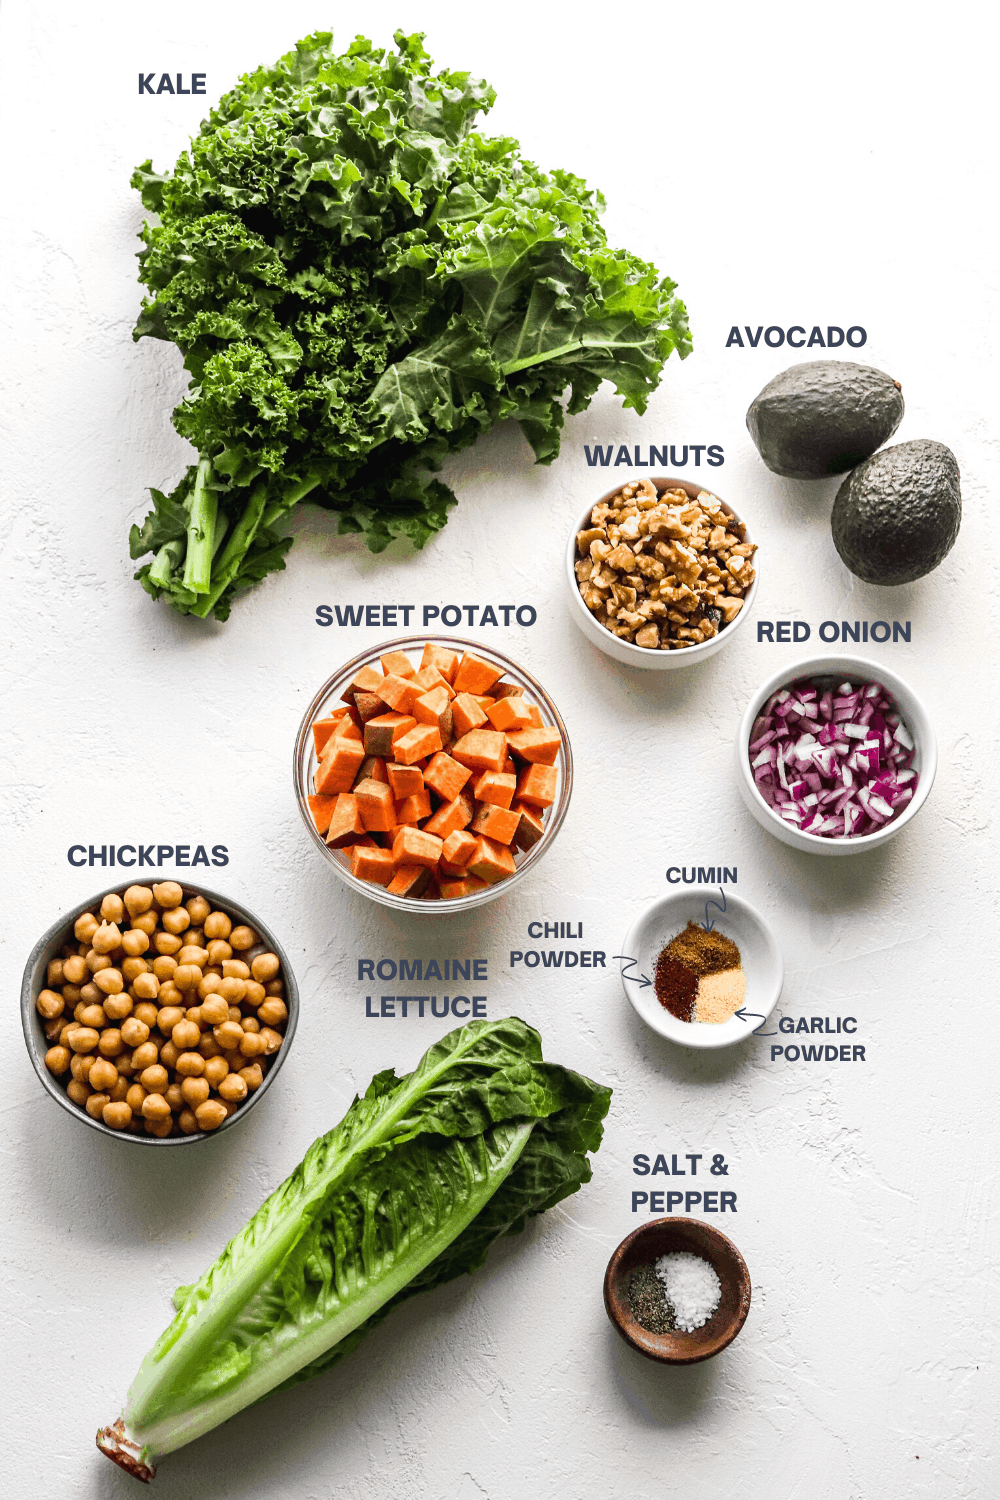 big bunch of kale, avocado, walnuts, diced sweet potato, chickpeas and seasoning on a white surface